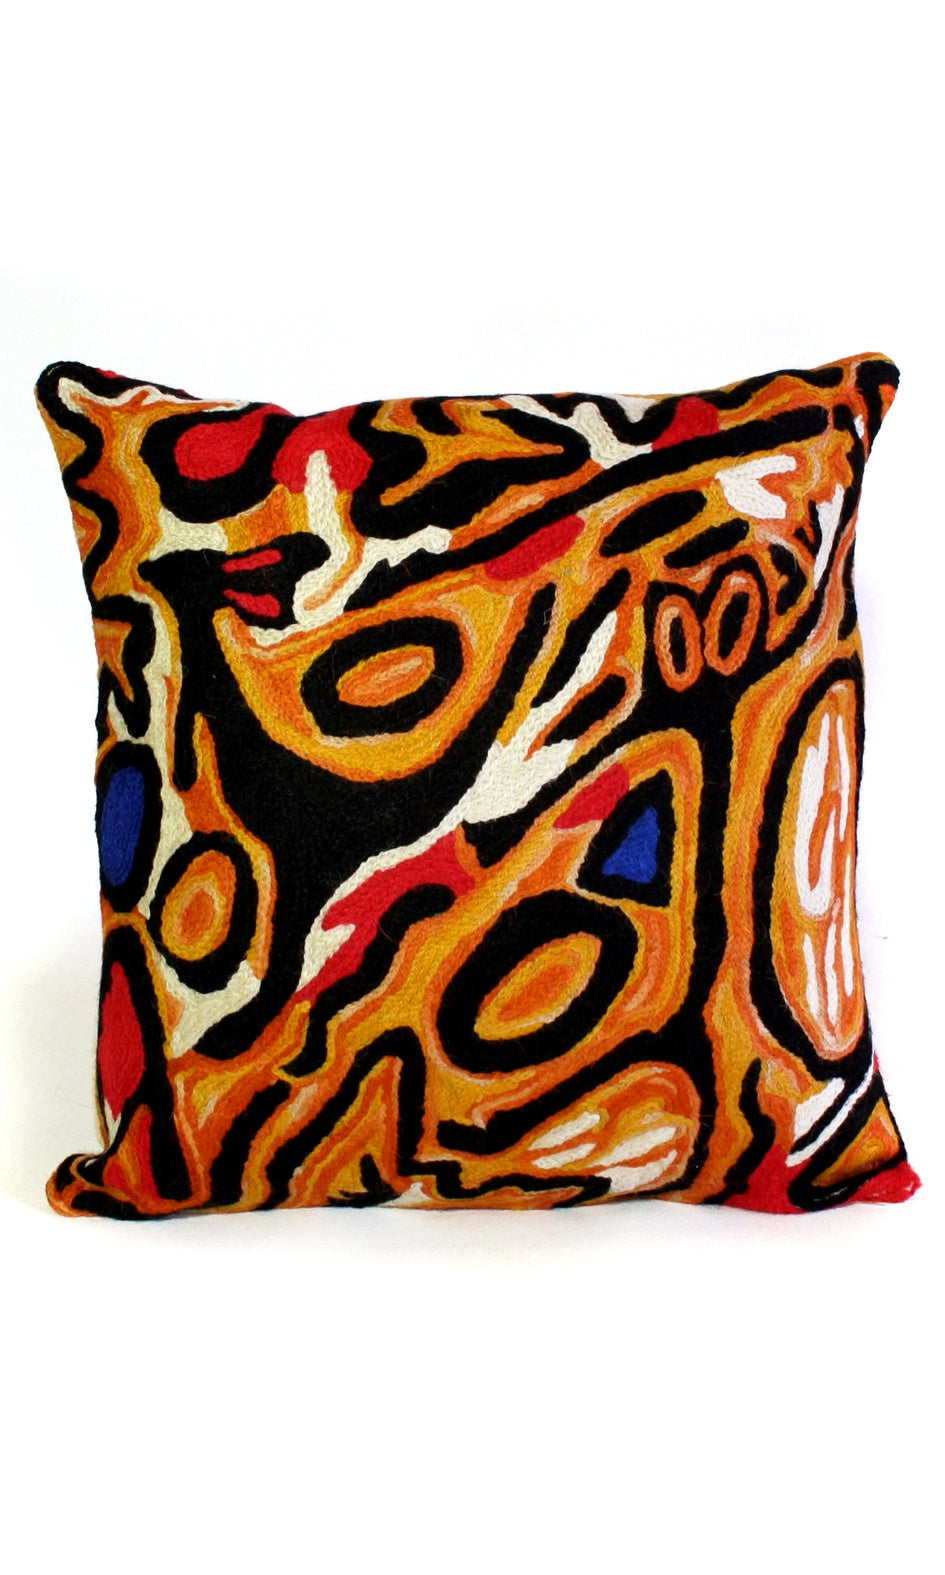 Aboriginal Art Cushion Cover by Cedric Varcoe (3)